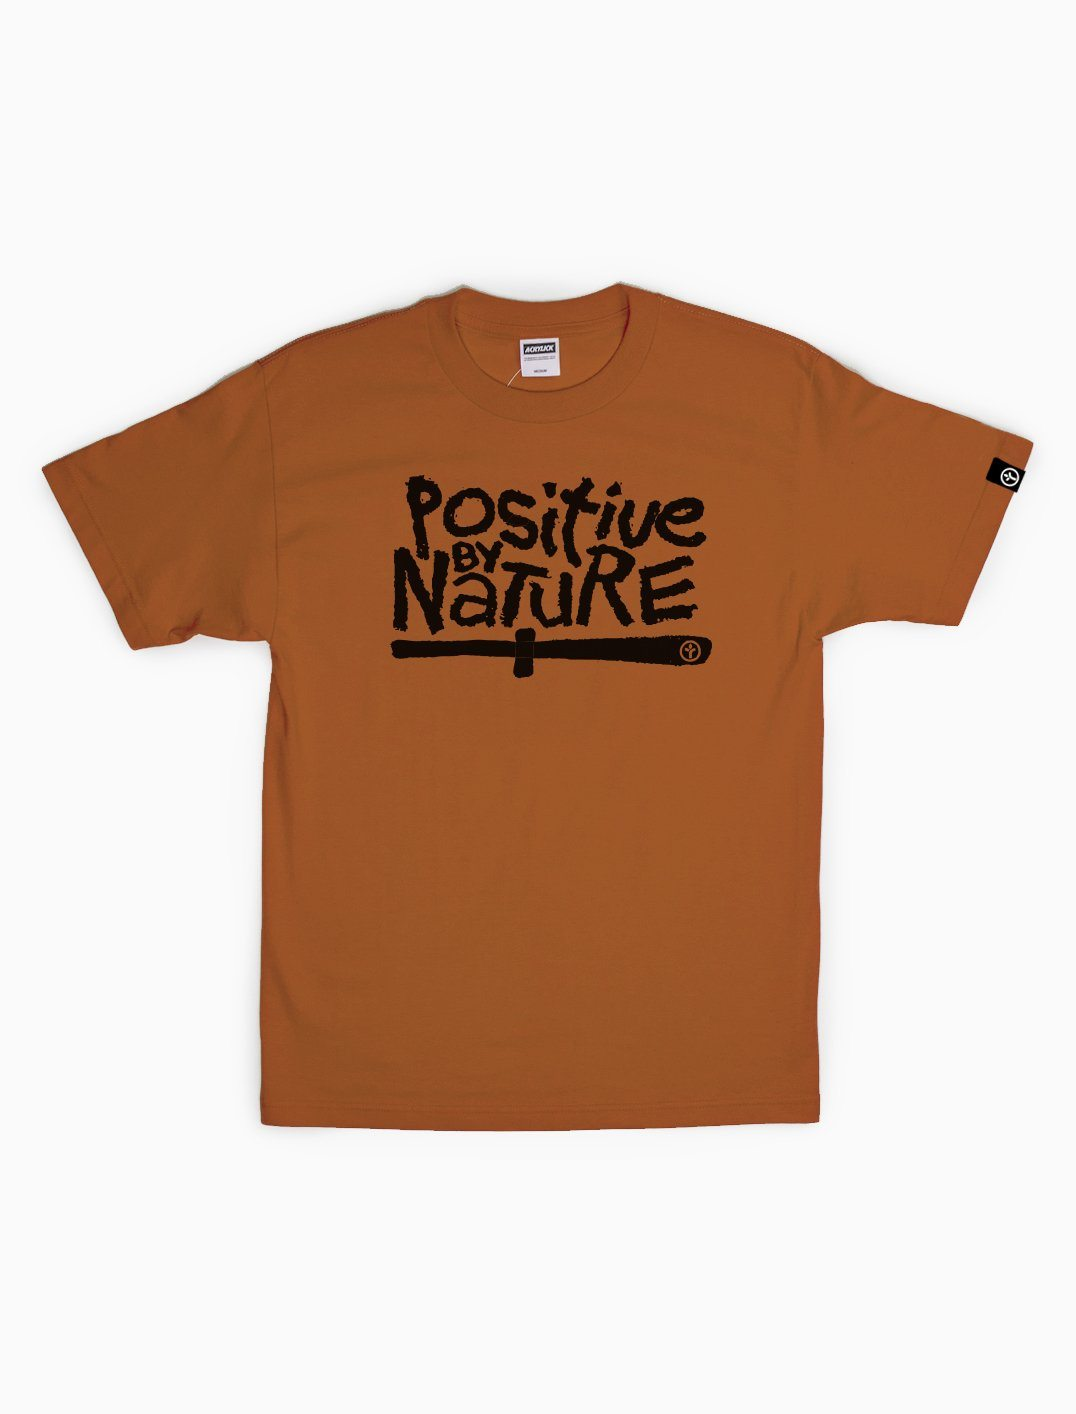 Acrylick Clothing - Positive By Nature Tee